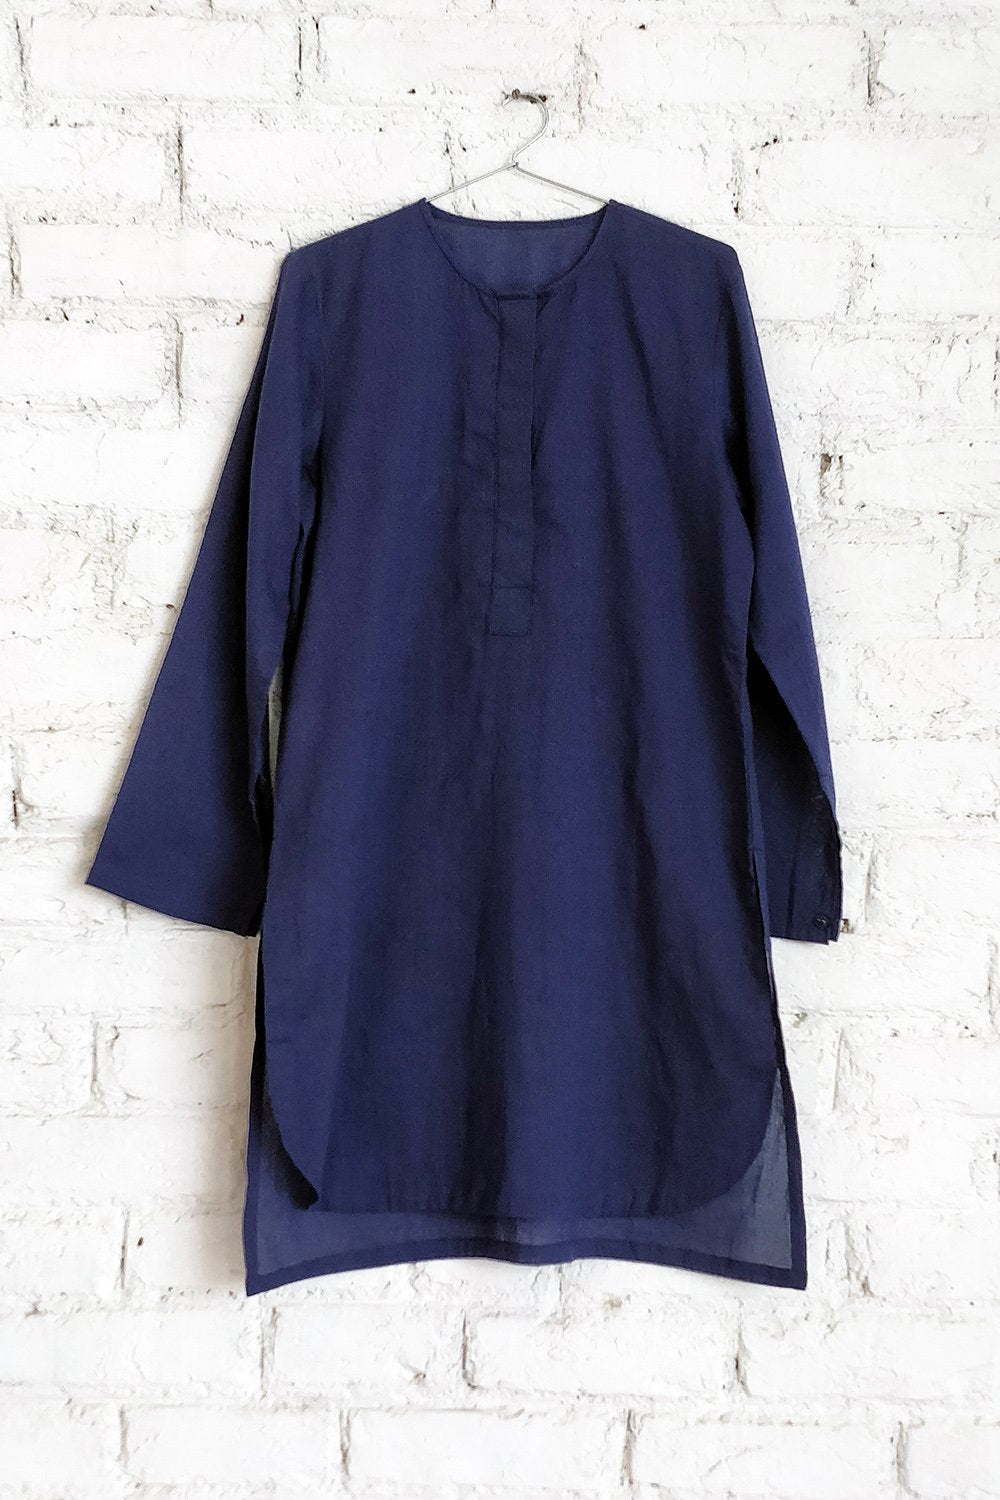 out of the blue kurta